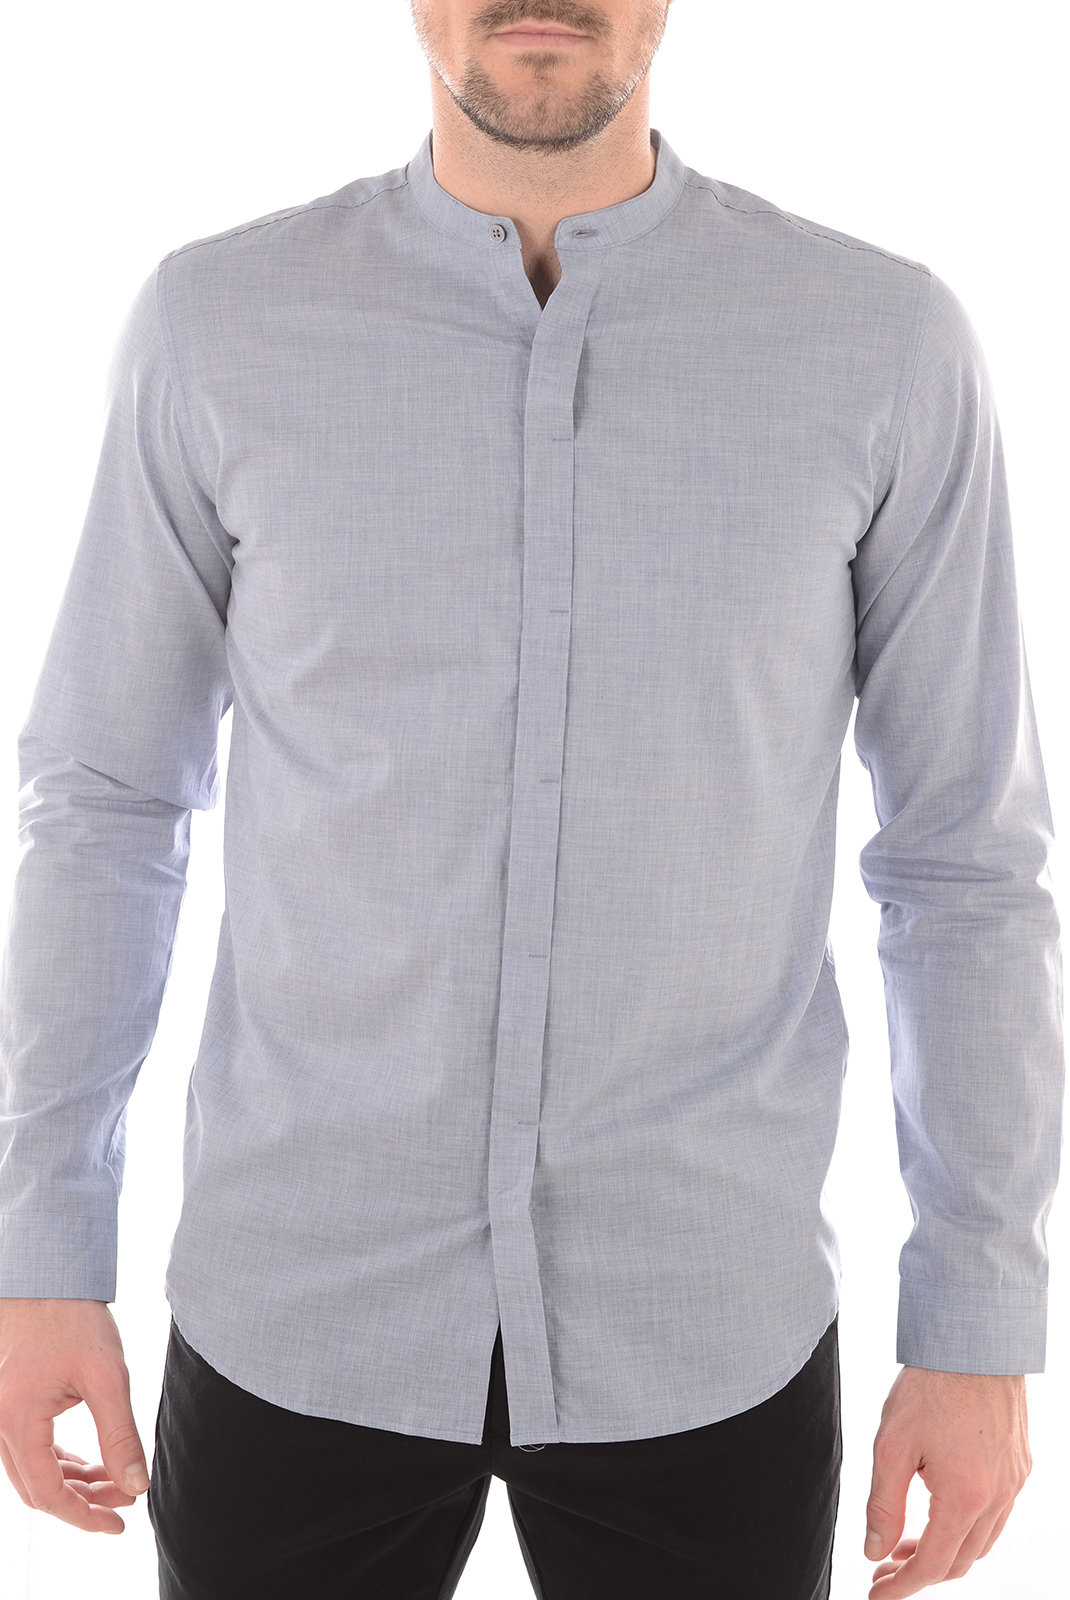 Chemises   Selected DONEATWOOD SHIRT LS LIGHT BLUE